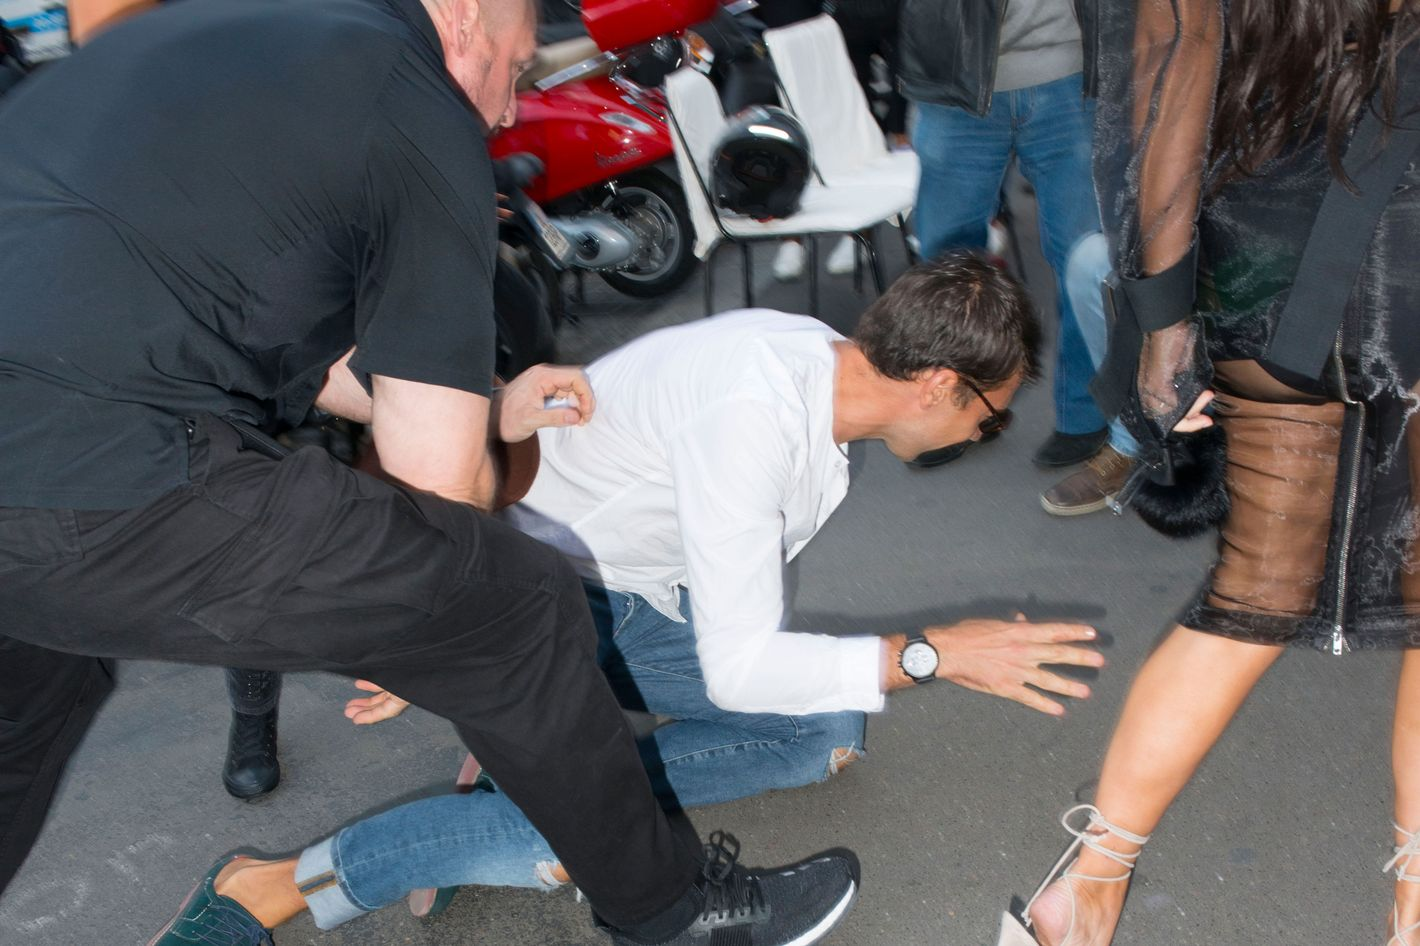 Kim Kardashian Files Complaint Against Vitalii Sediuk For Paris Fashion Week Incident